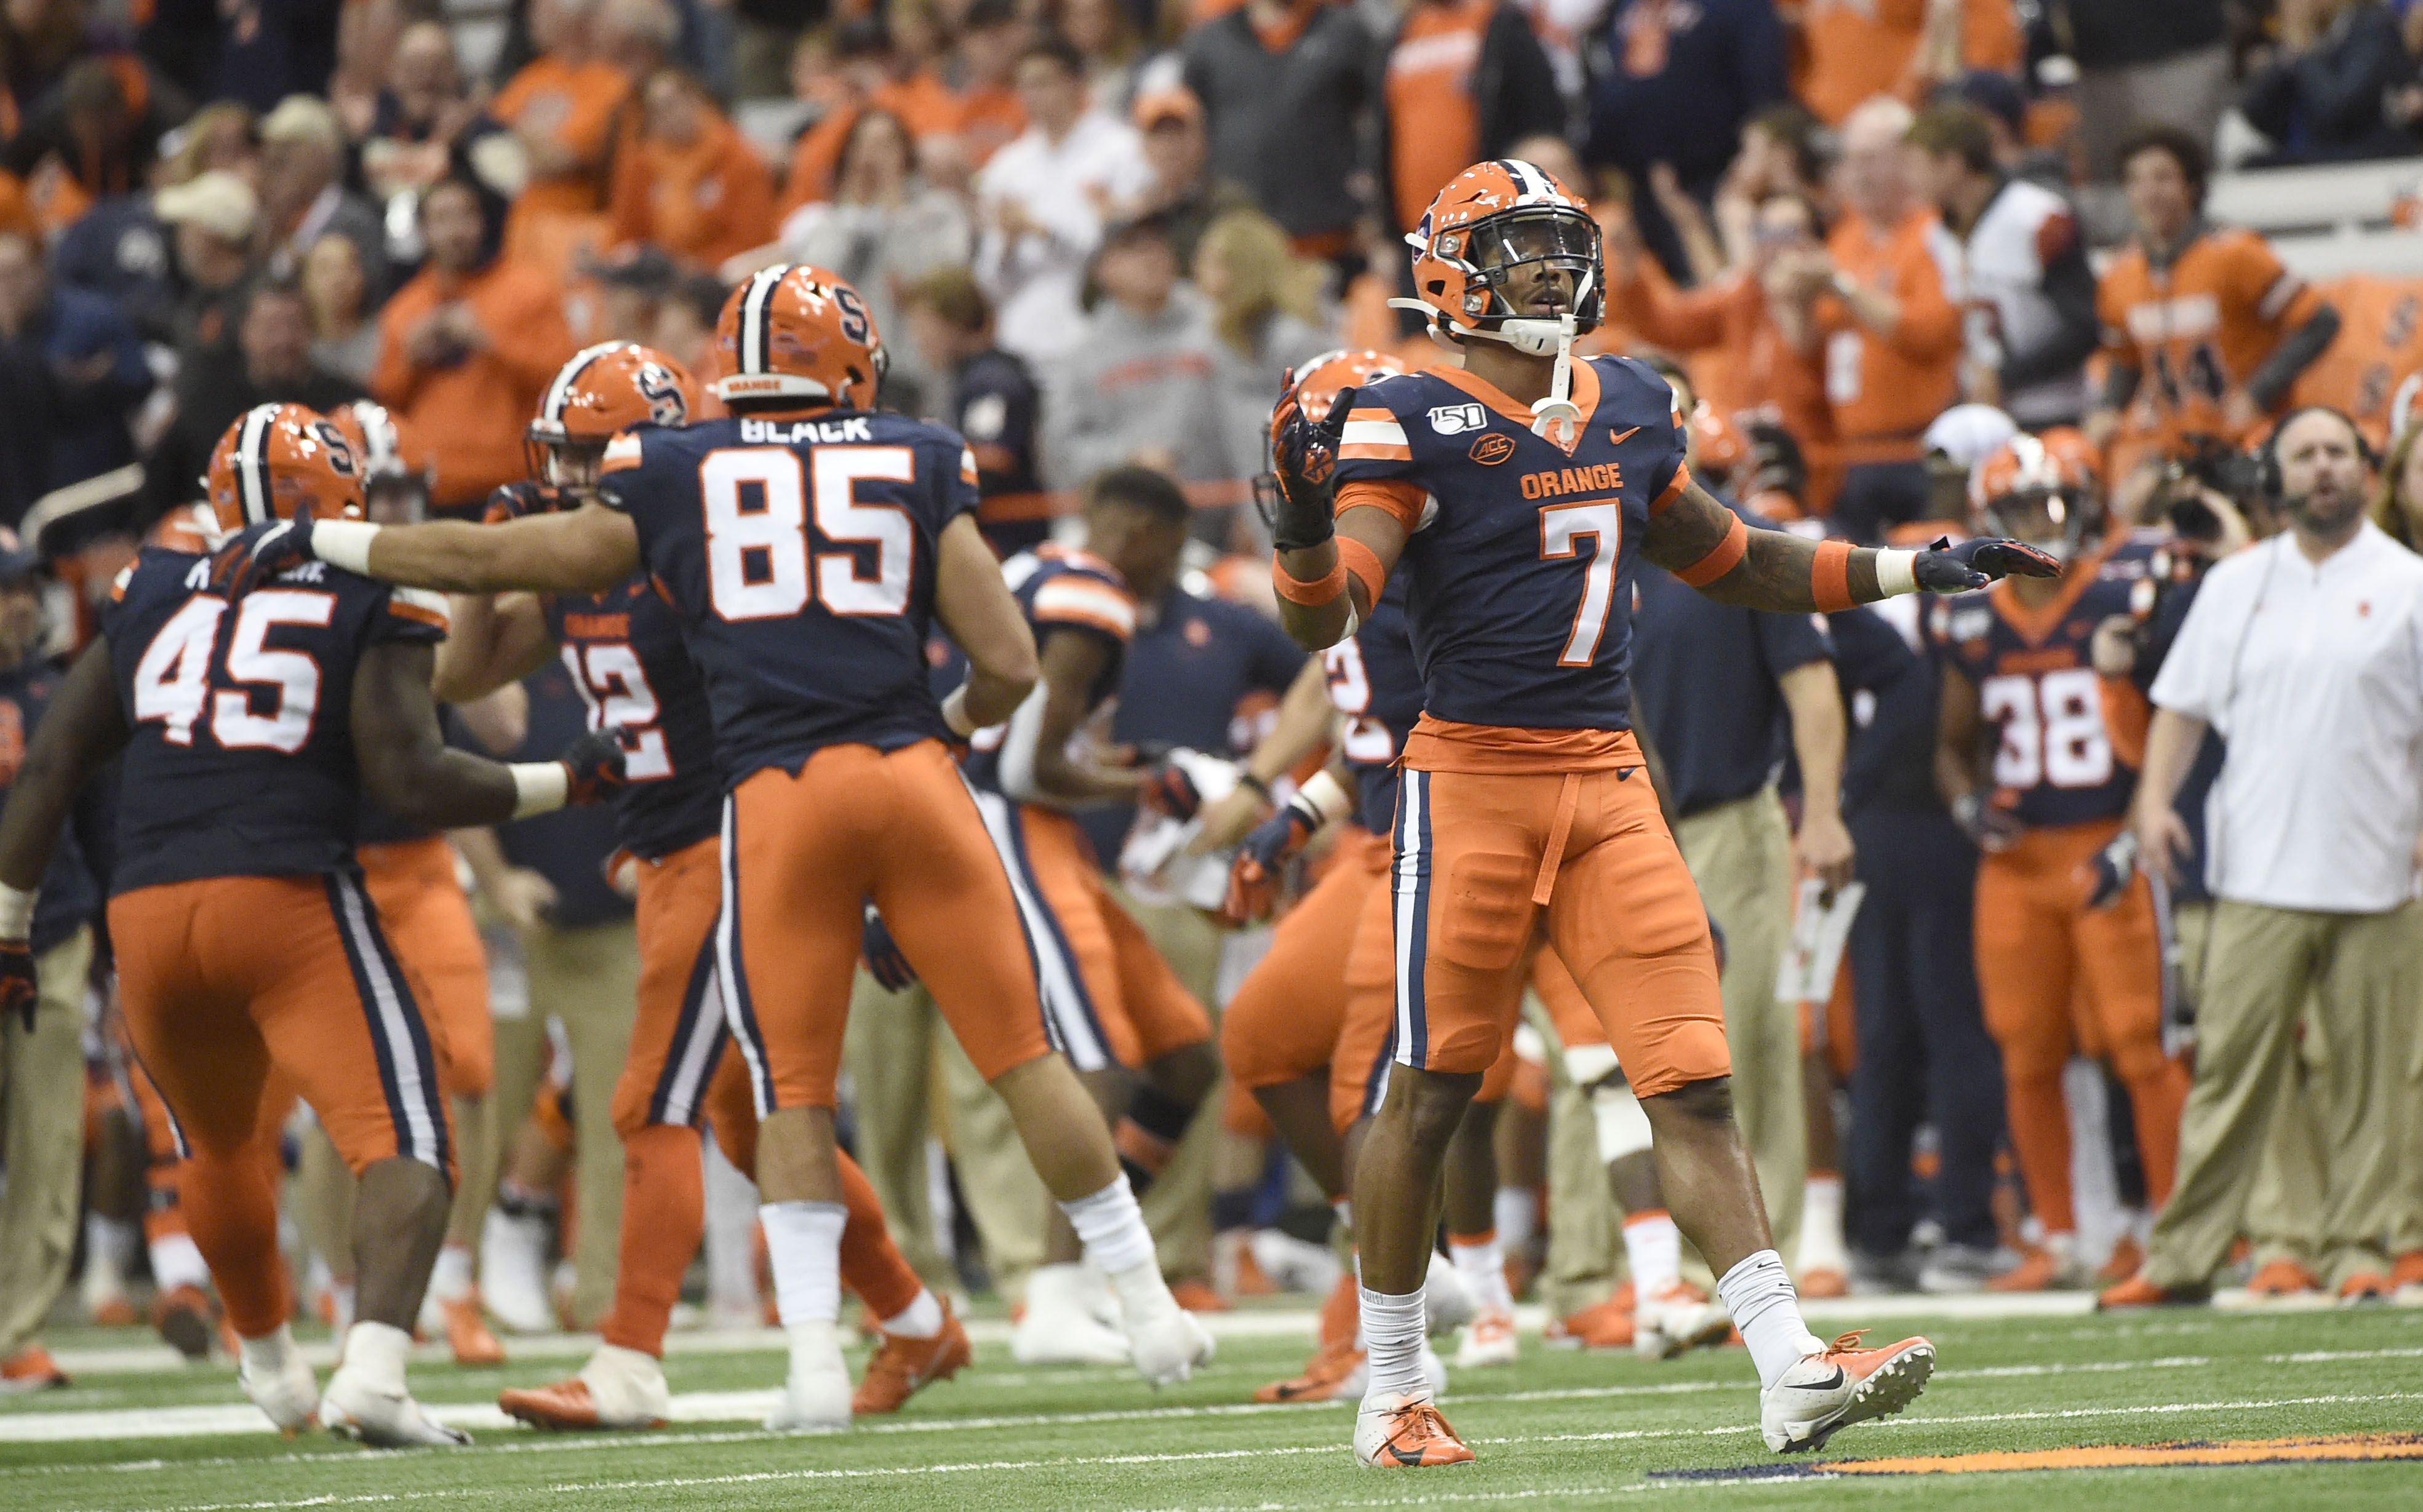 Syracuse Football Vs Georgia Tech Won T Be On Live Tv In Cny Here S How To Watch Free Online Syracuse Com